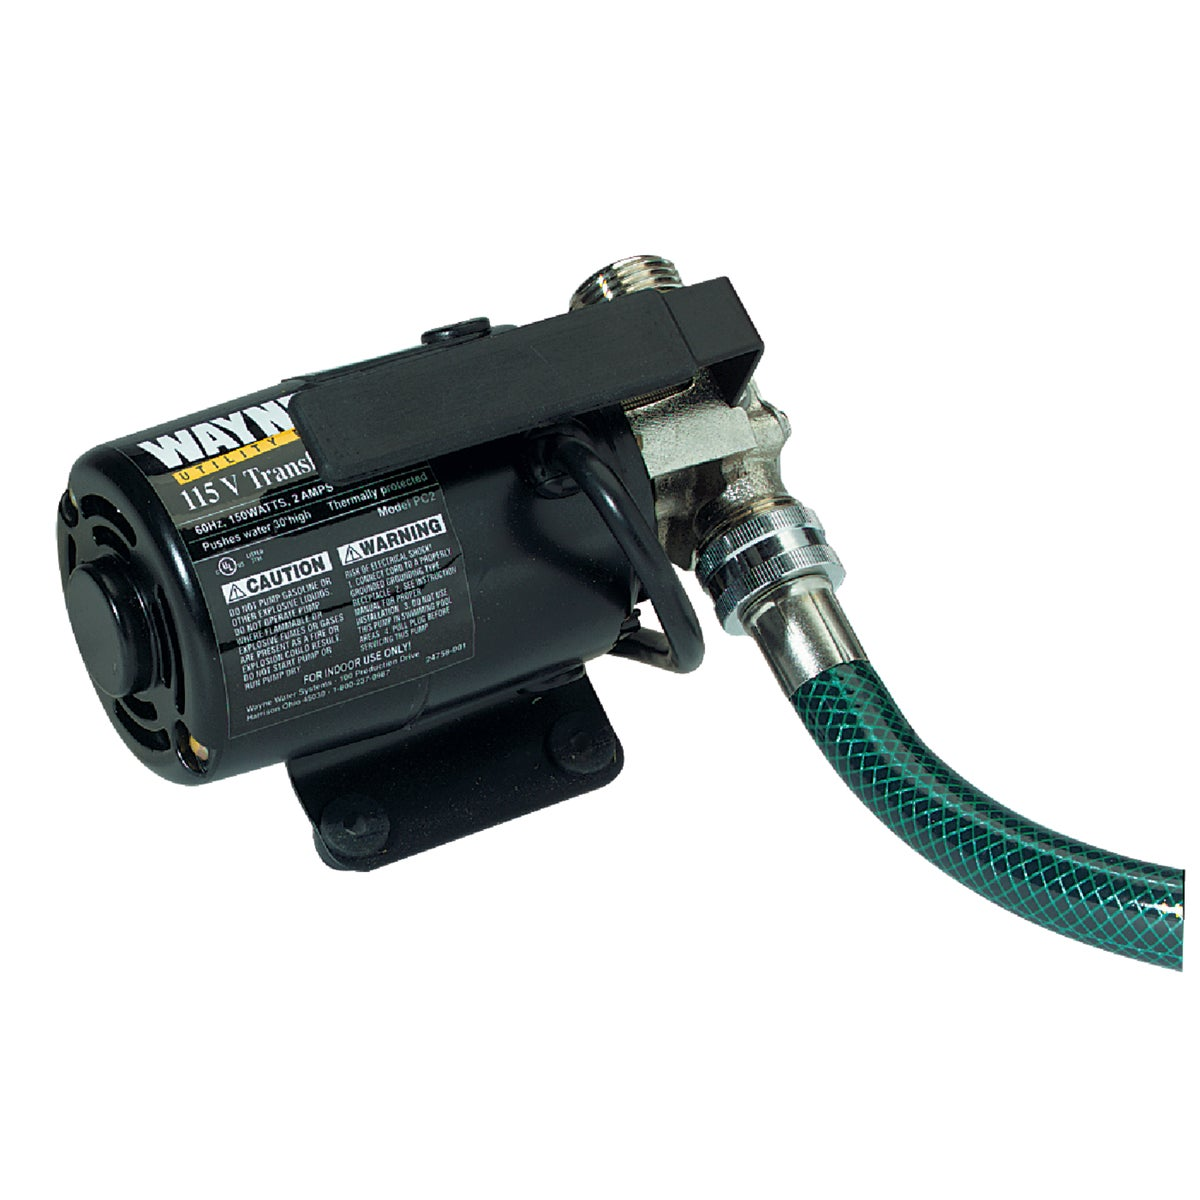 115V UTILITY PUMP & HOSE - PC2 by Wayne Water Systems